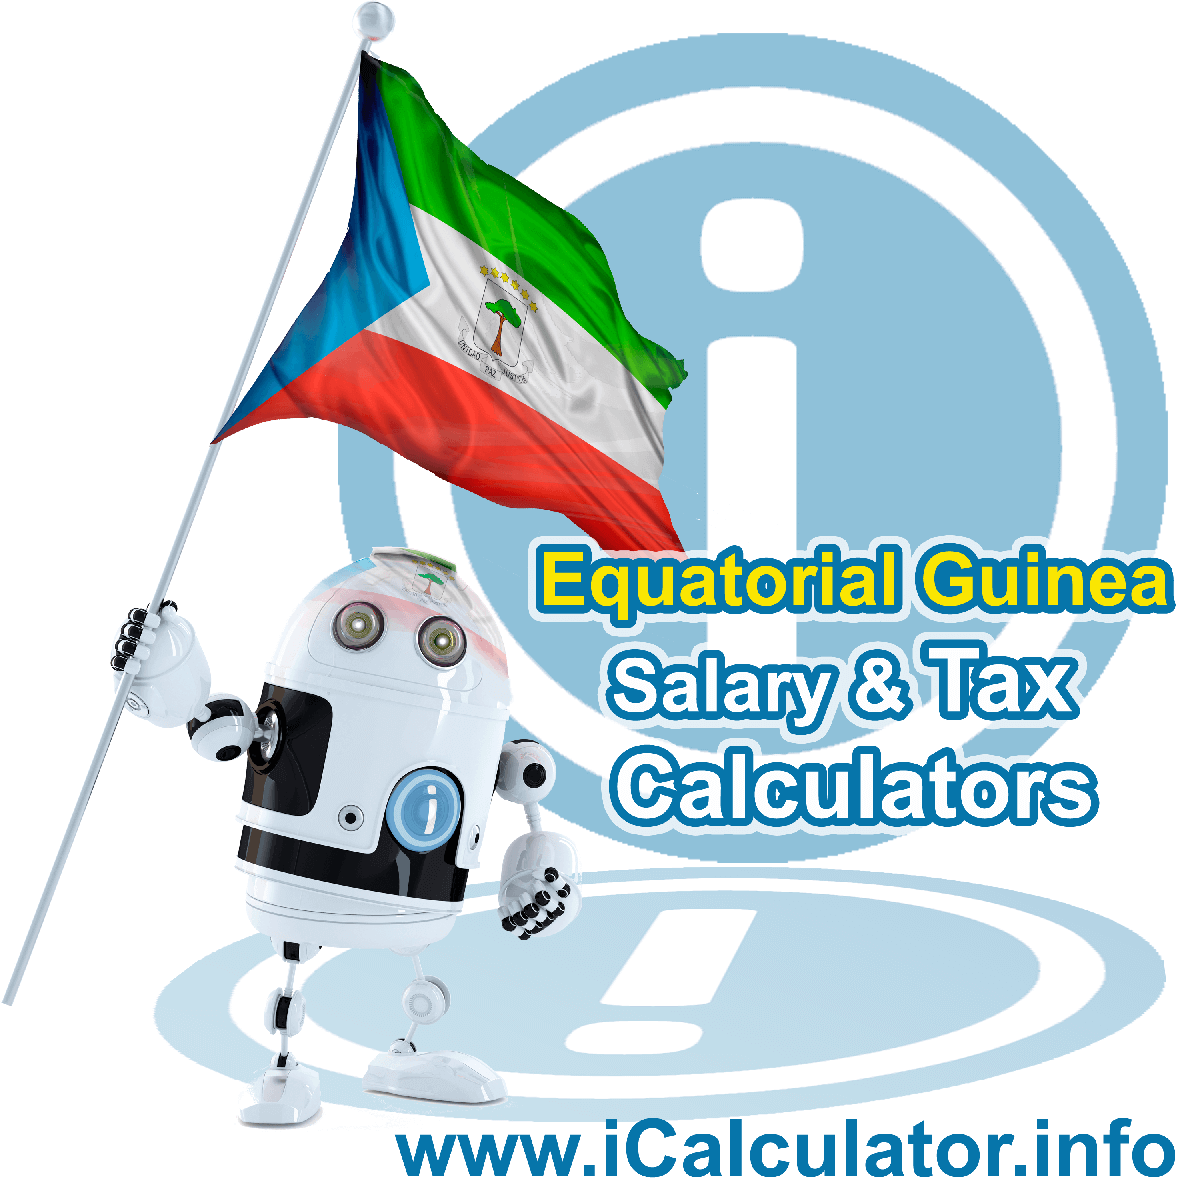 Equatorial Guinea Tax Calculator. This image shows the Equatorial Guinea flag and information relating to the tax formula for the Equatorial Guinea Salary Calculator